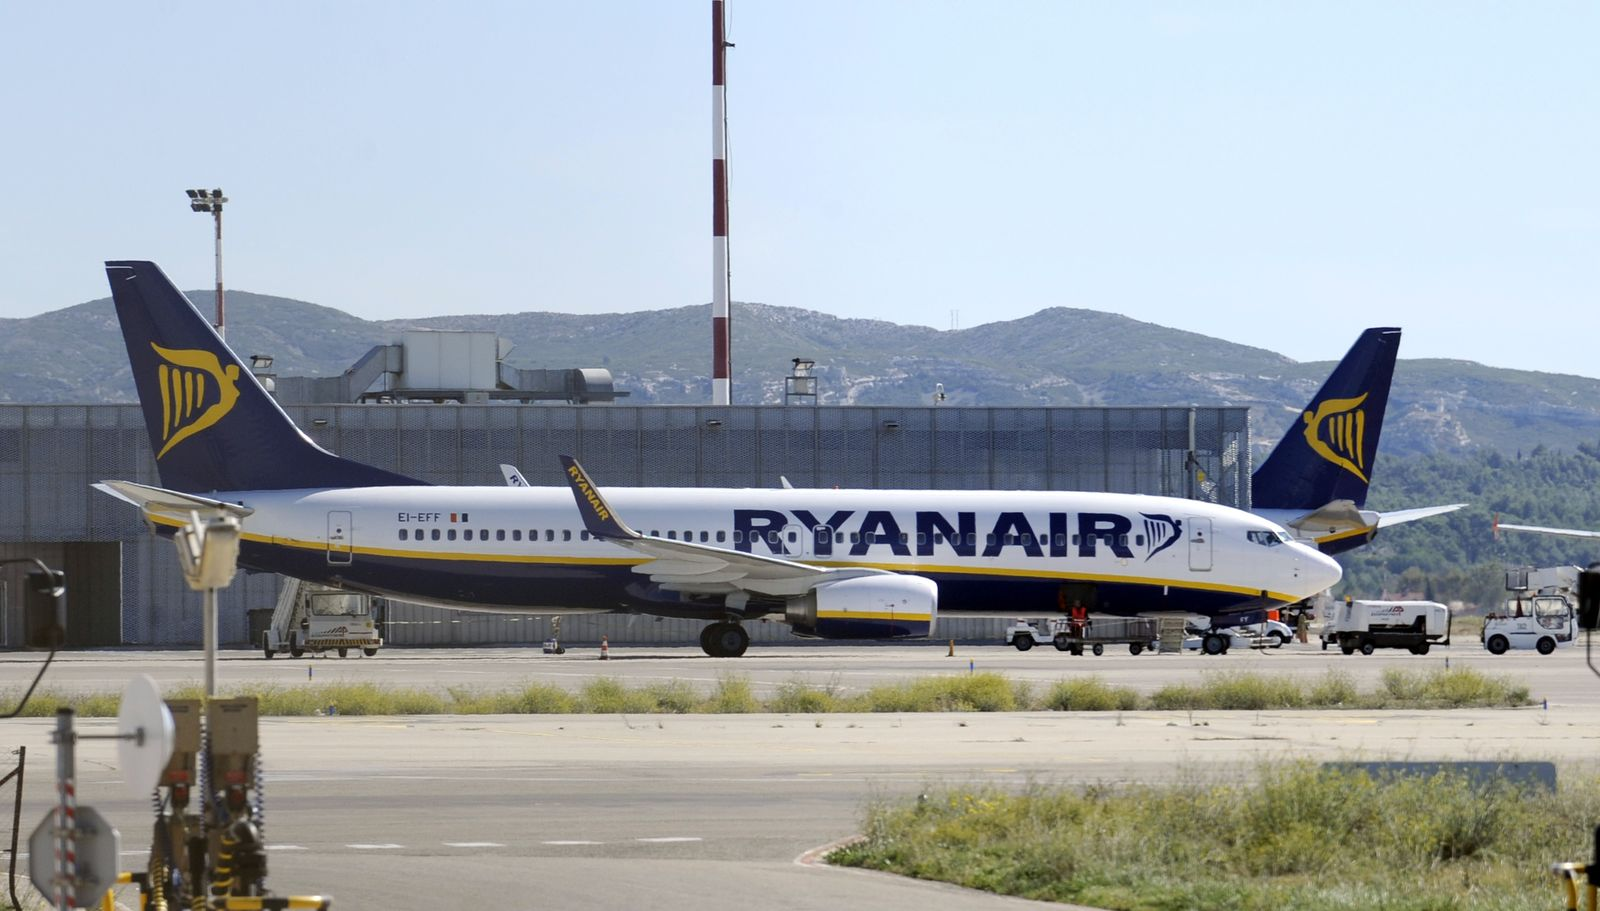 FRANCE-IRELAND-AIRLINE-COMPANY-RYANAIR-LABOUR